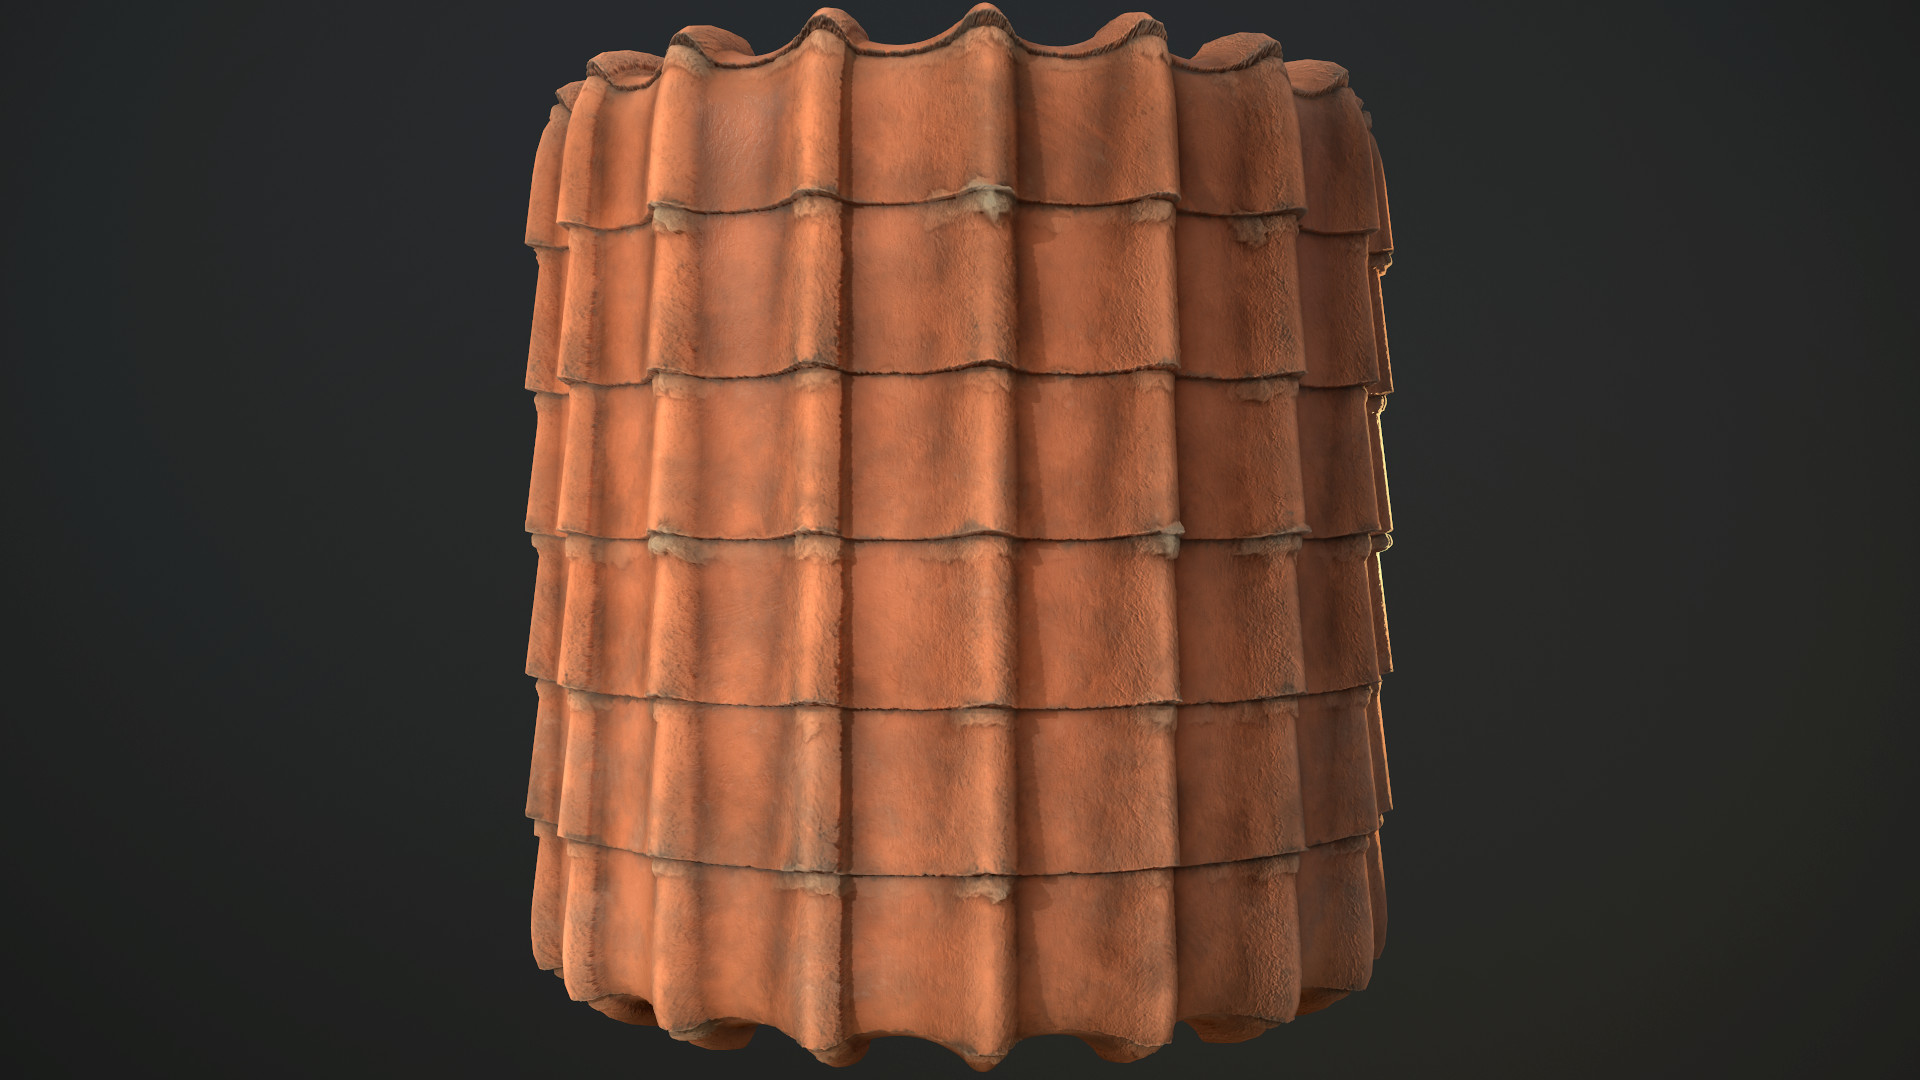 Kieran Bowsher Old Ceramic Roof Tiles